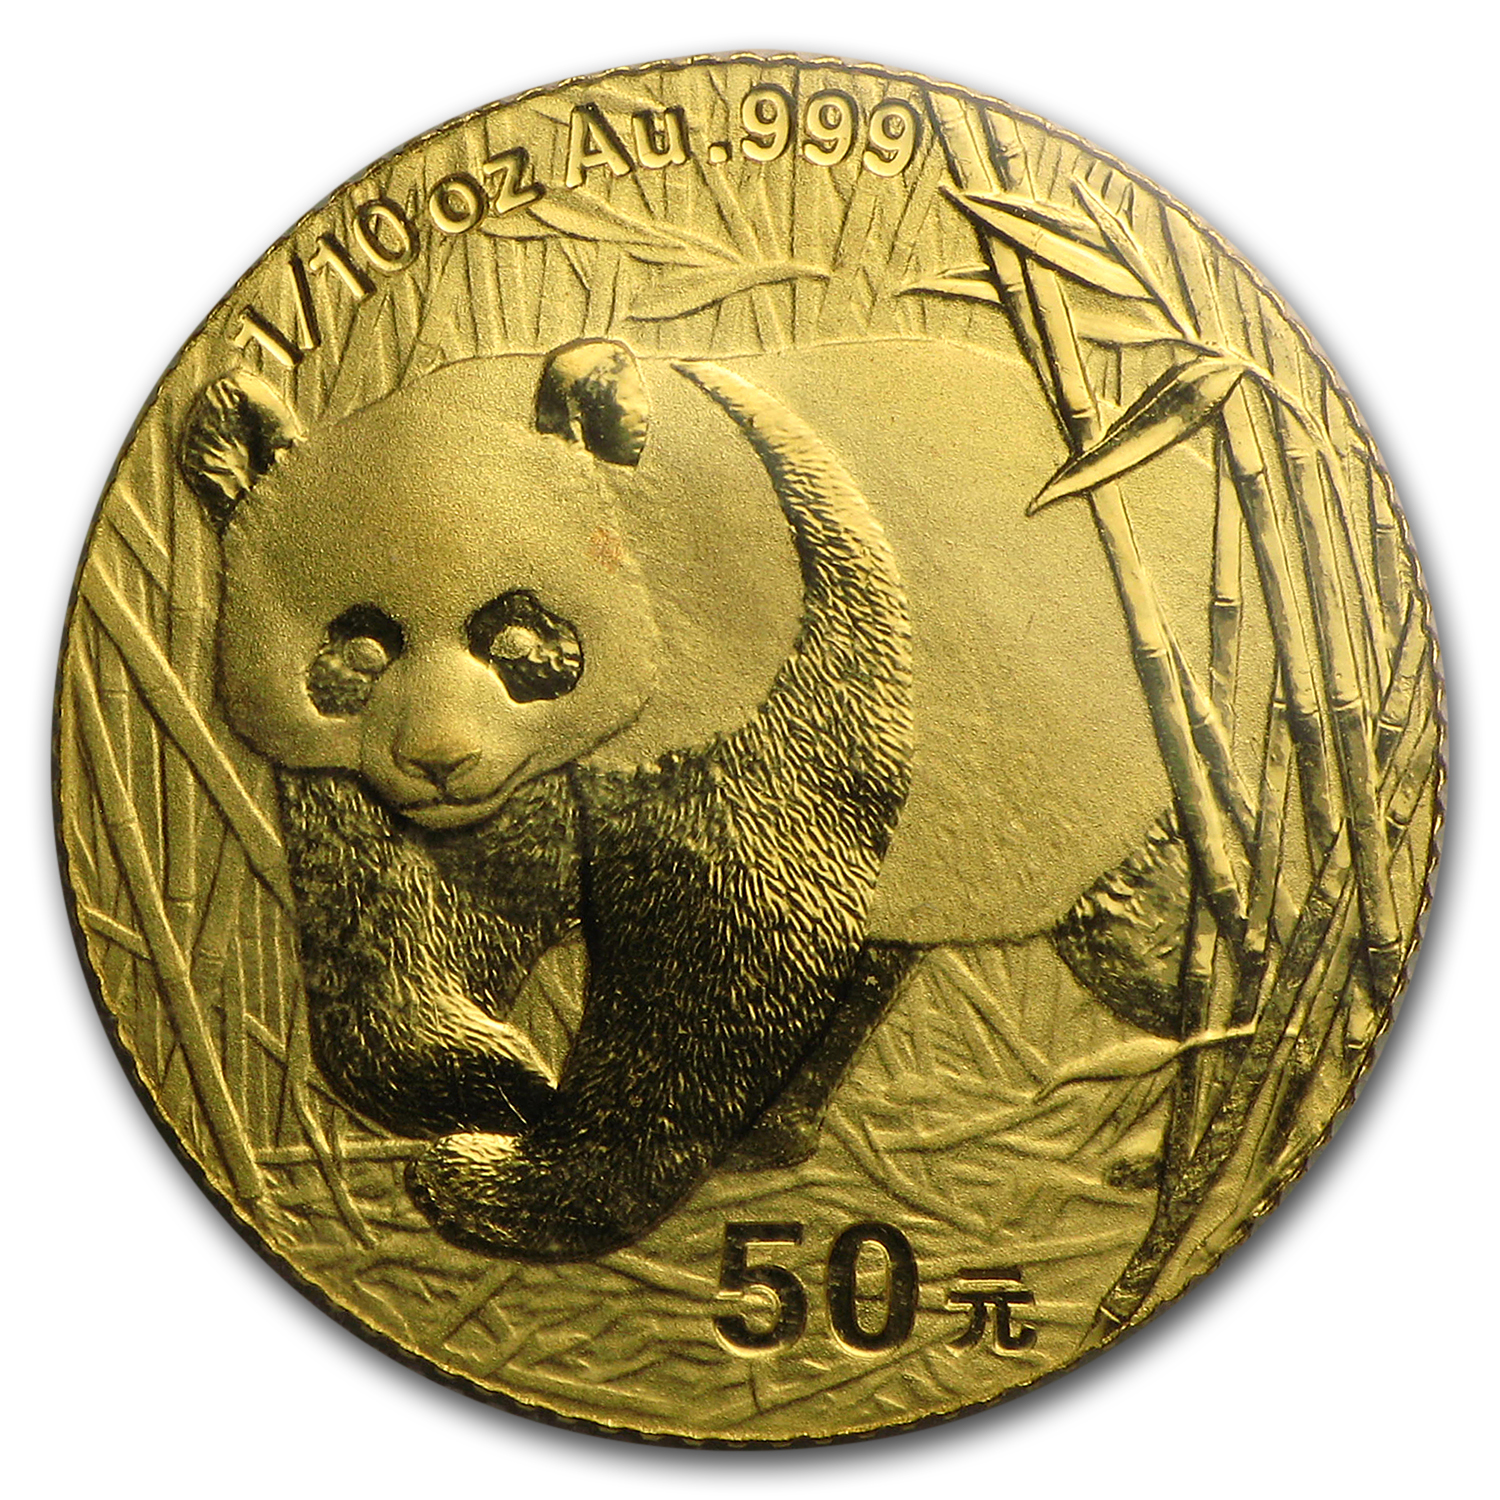 2001 China 1/10 oz Gold Panda BU (Sealed)